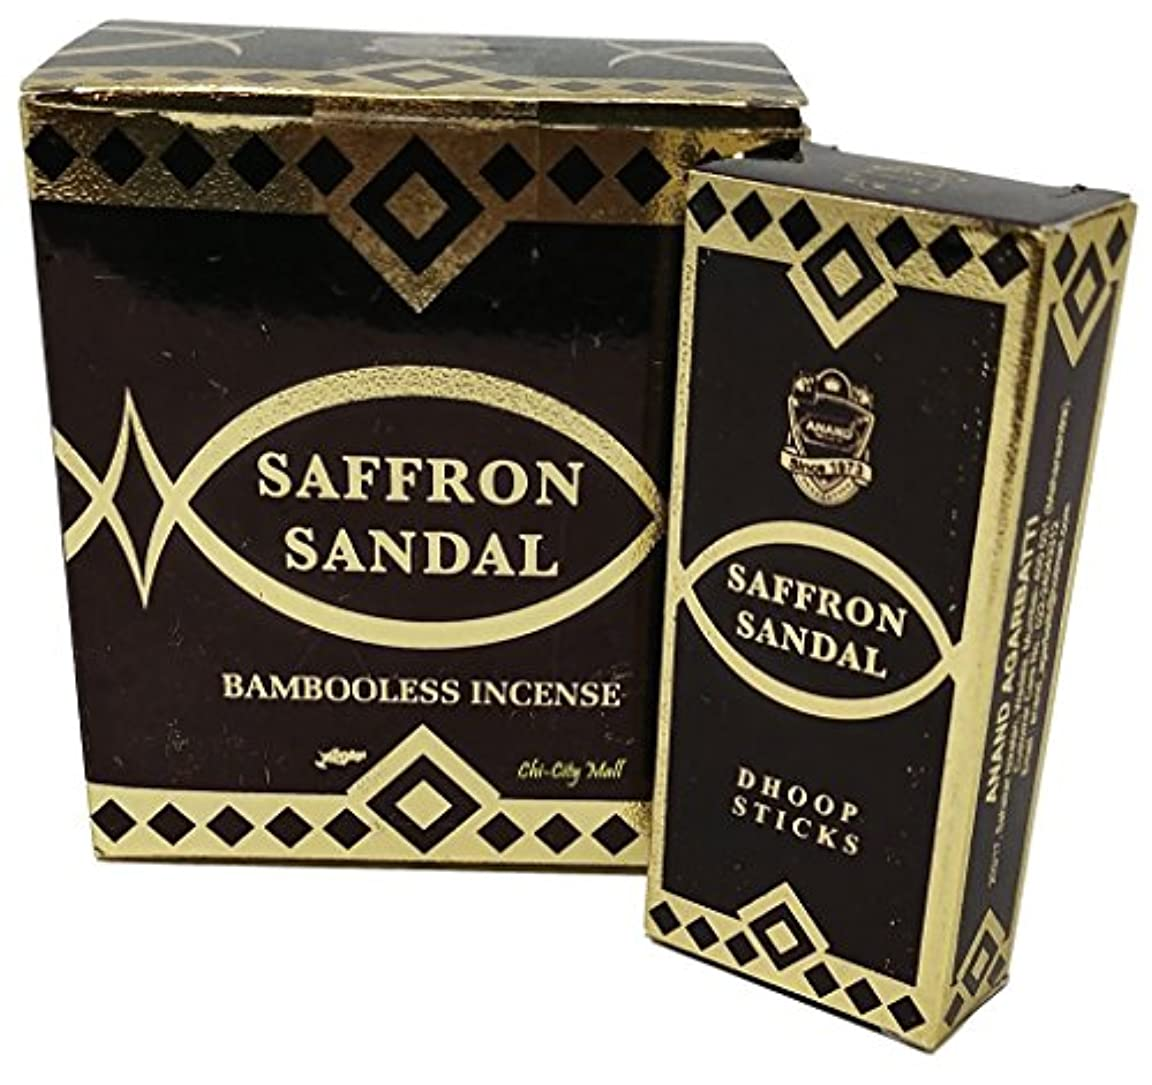 金曜日藤色コンテンポラリーChi-City Mall Saffron Sandal Bambooless Incense - Dhoop Sticks Anand Agarbatti Hand-rolled in India 15 Sticks...